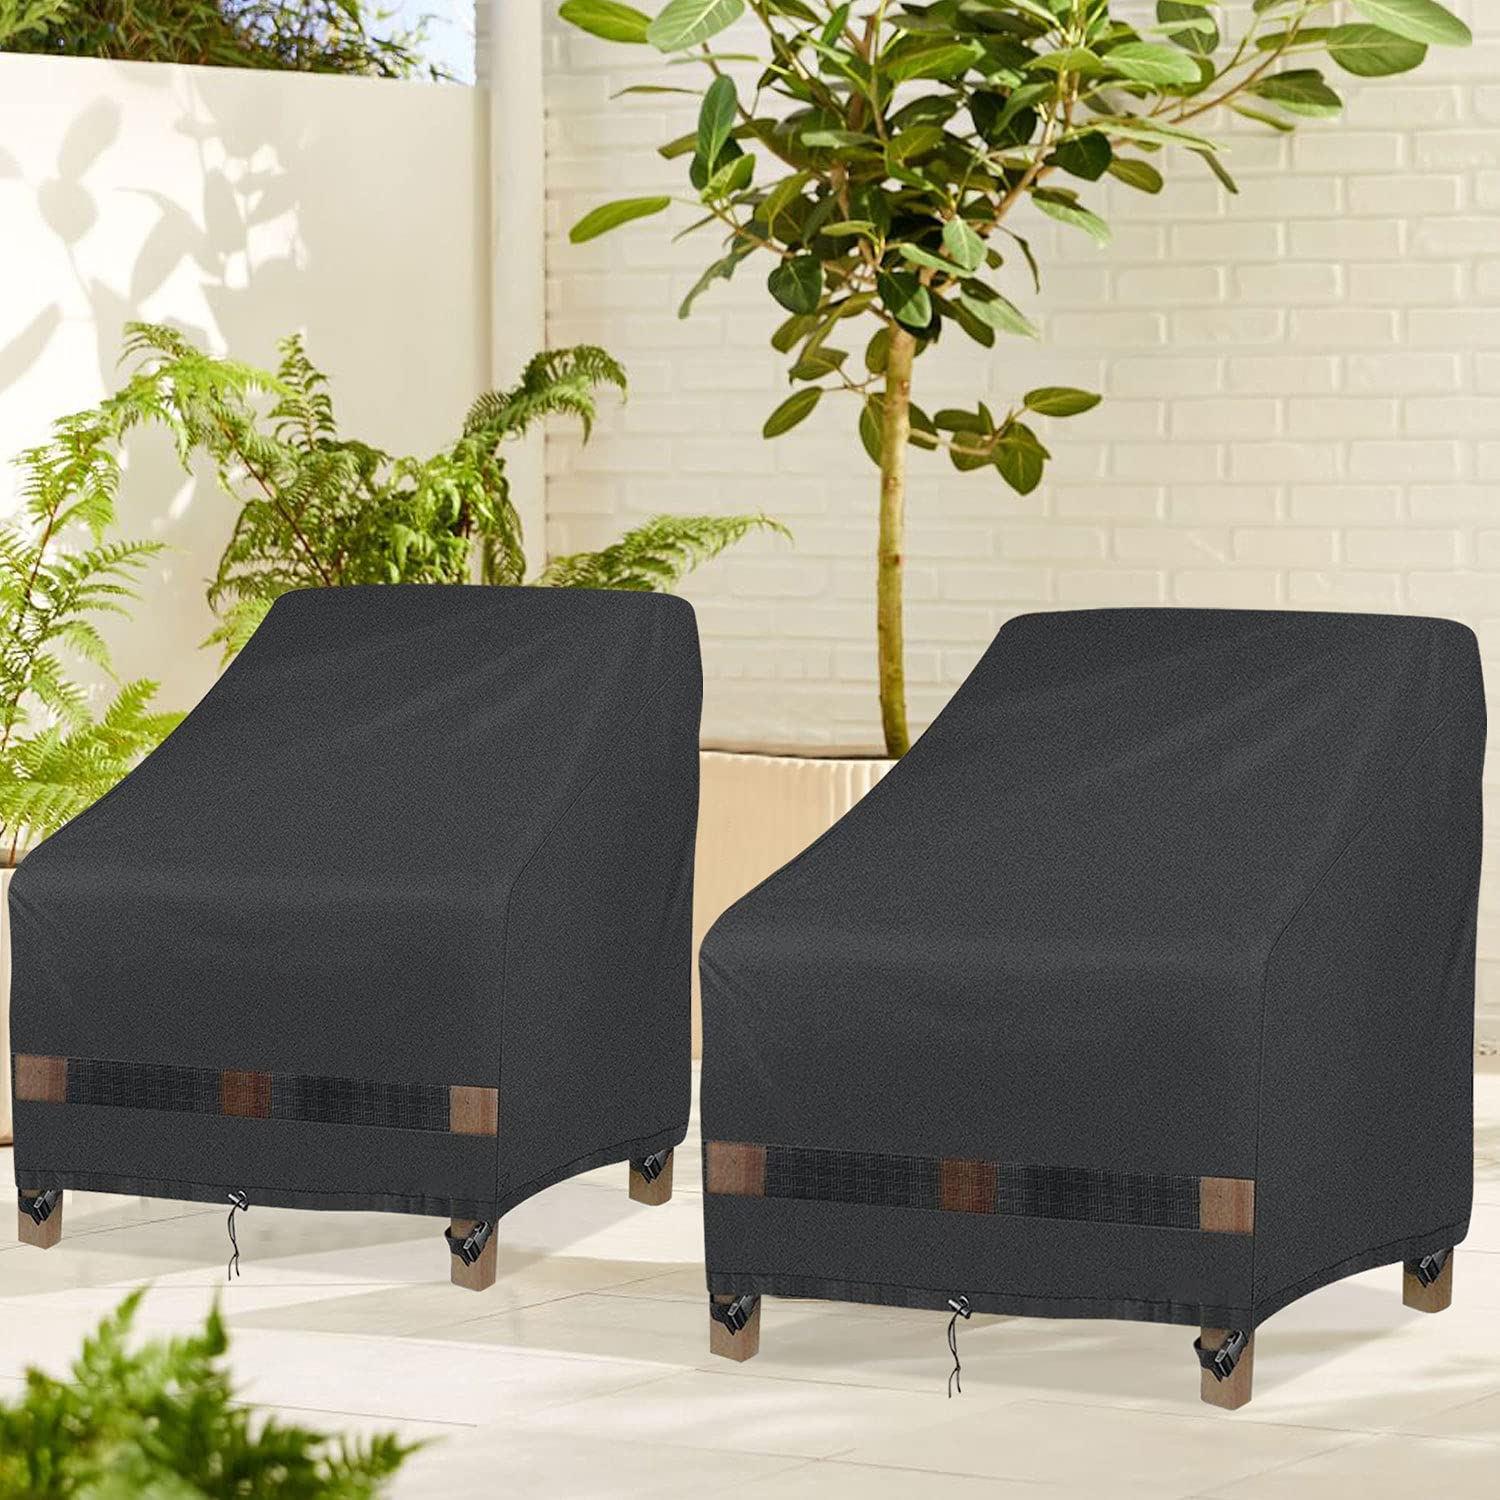 """GARDRIT Patio Chair Covers for Outdoor Furniture, 100% Waterproof Patio Furniture Covers, Durable 600D Oxford Polyester Anti-UV Outdoor Chair Covers 35"""" W x 38"""" D x 31"""" H, 2 Pack : Patio, Lawn & Garden"""